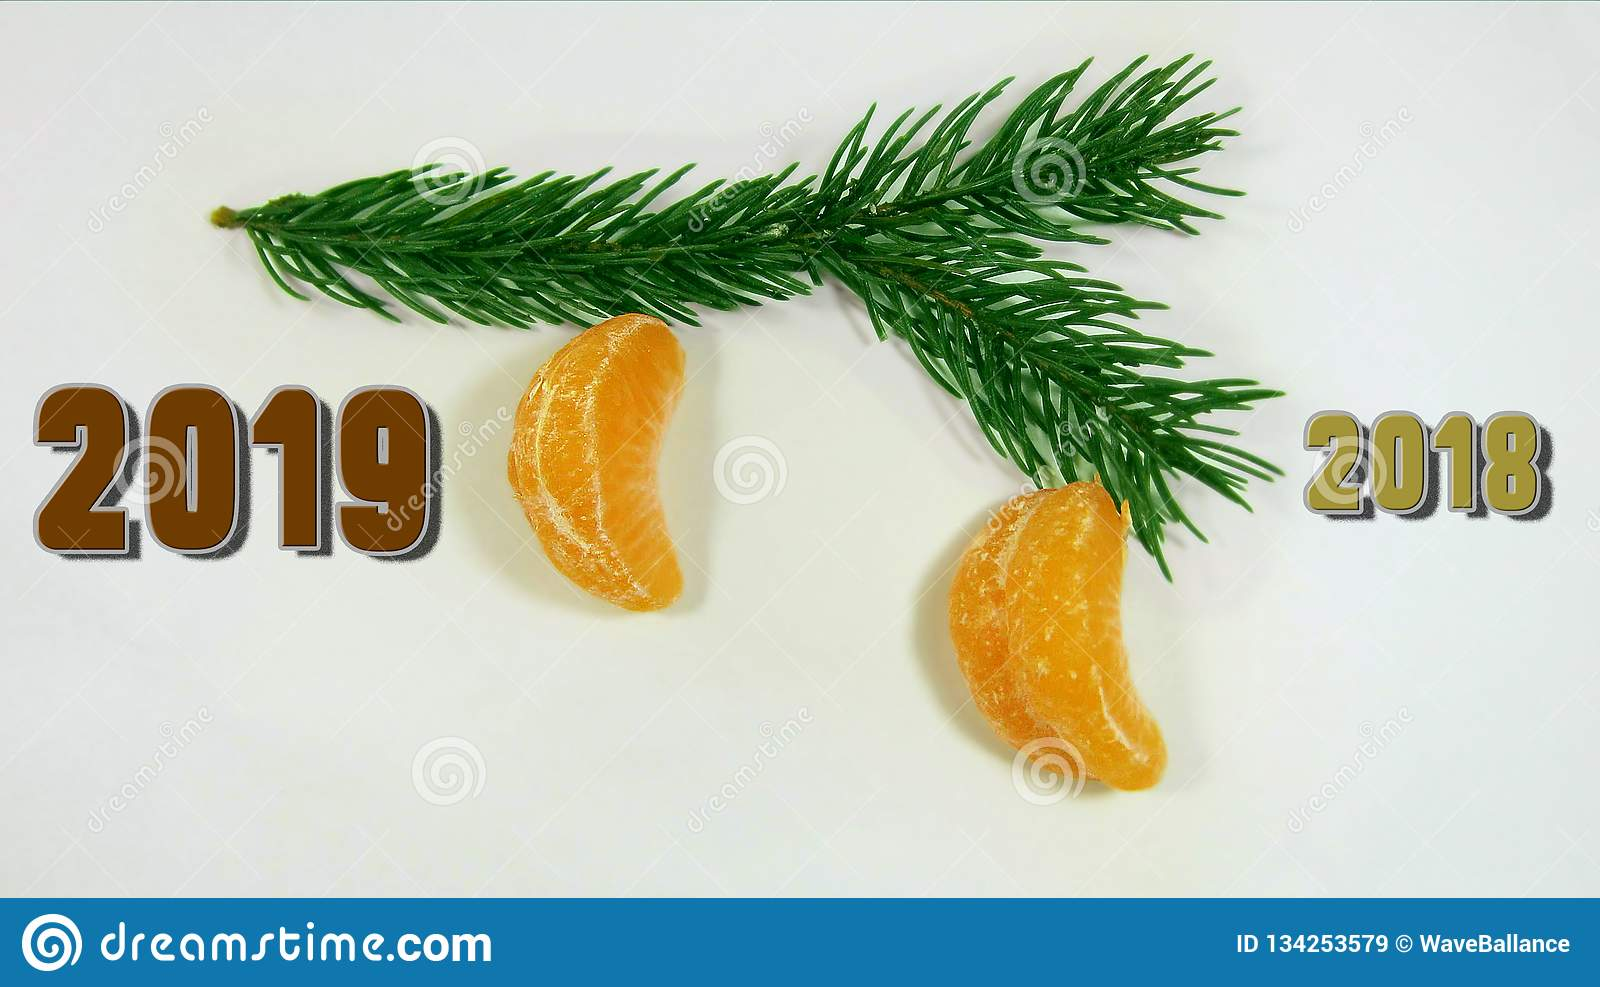 Going Away For Christmas 2019 A Road Sign 2018 To 2019. The Color Of The Brown Pig. The Branch